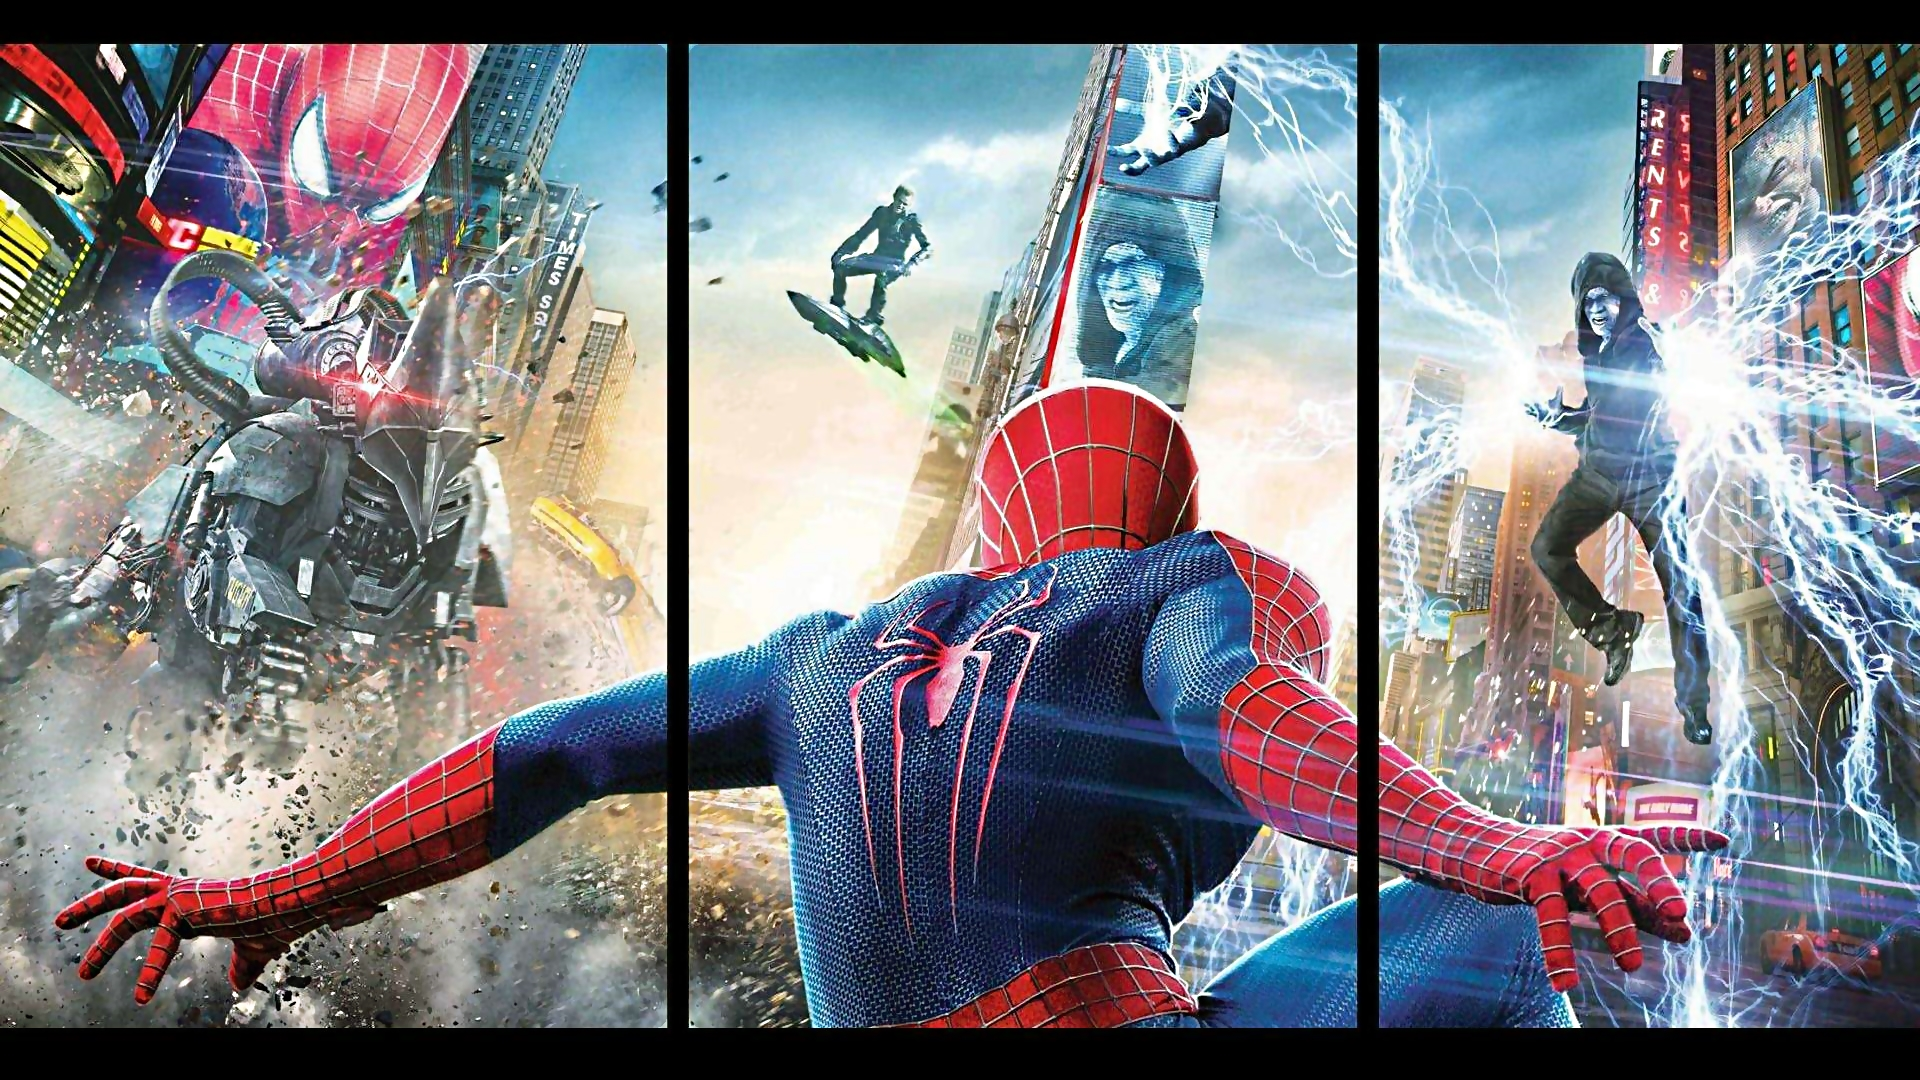 The Amazing Spider Man 2 Movie Poster Wallpaper 1 By ProfessorAdagio